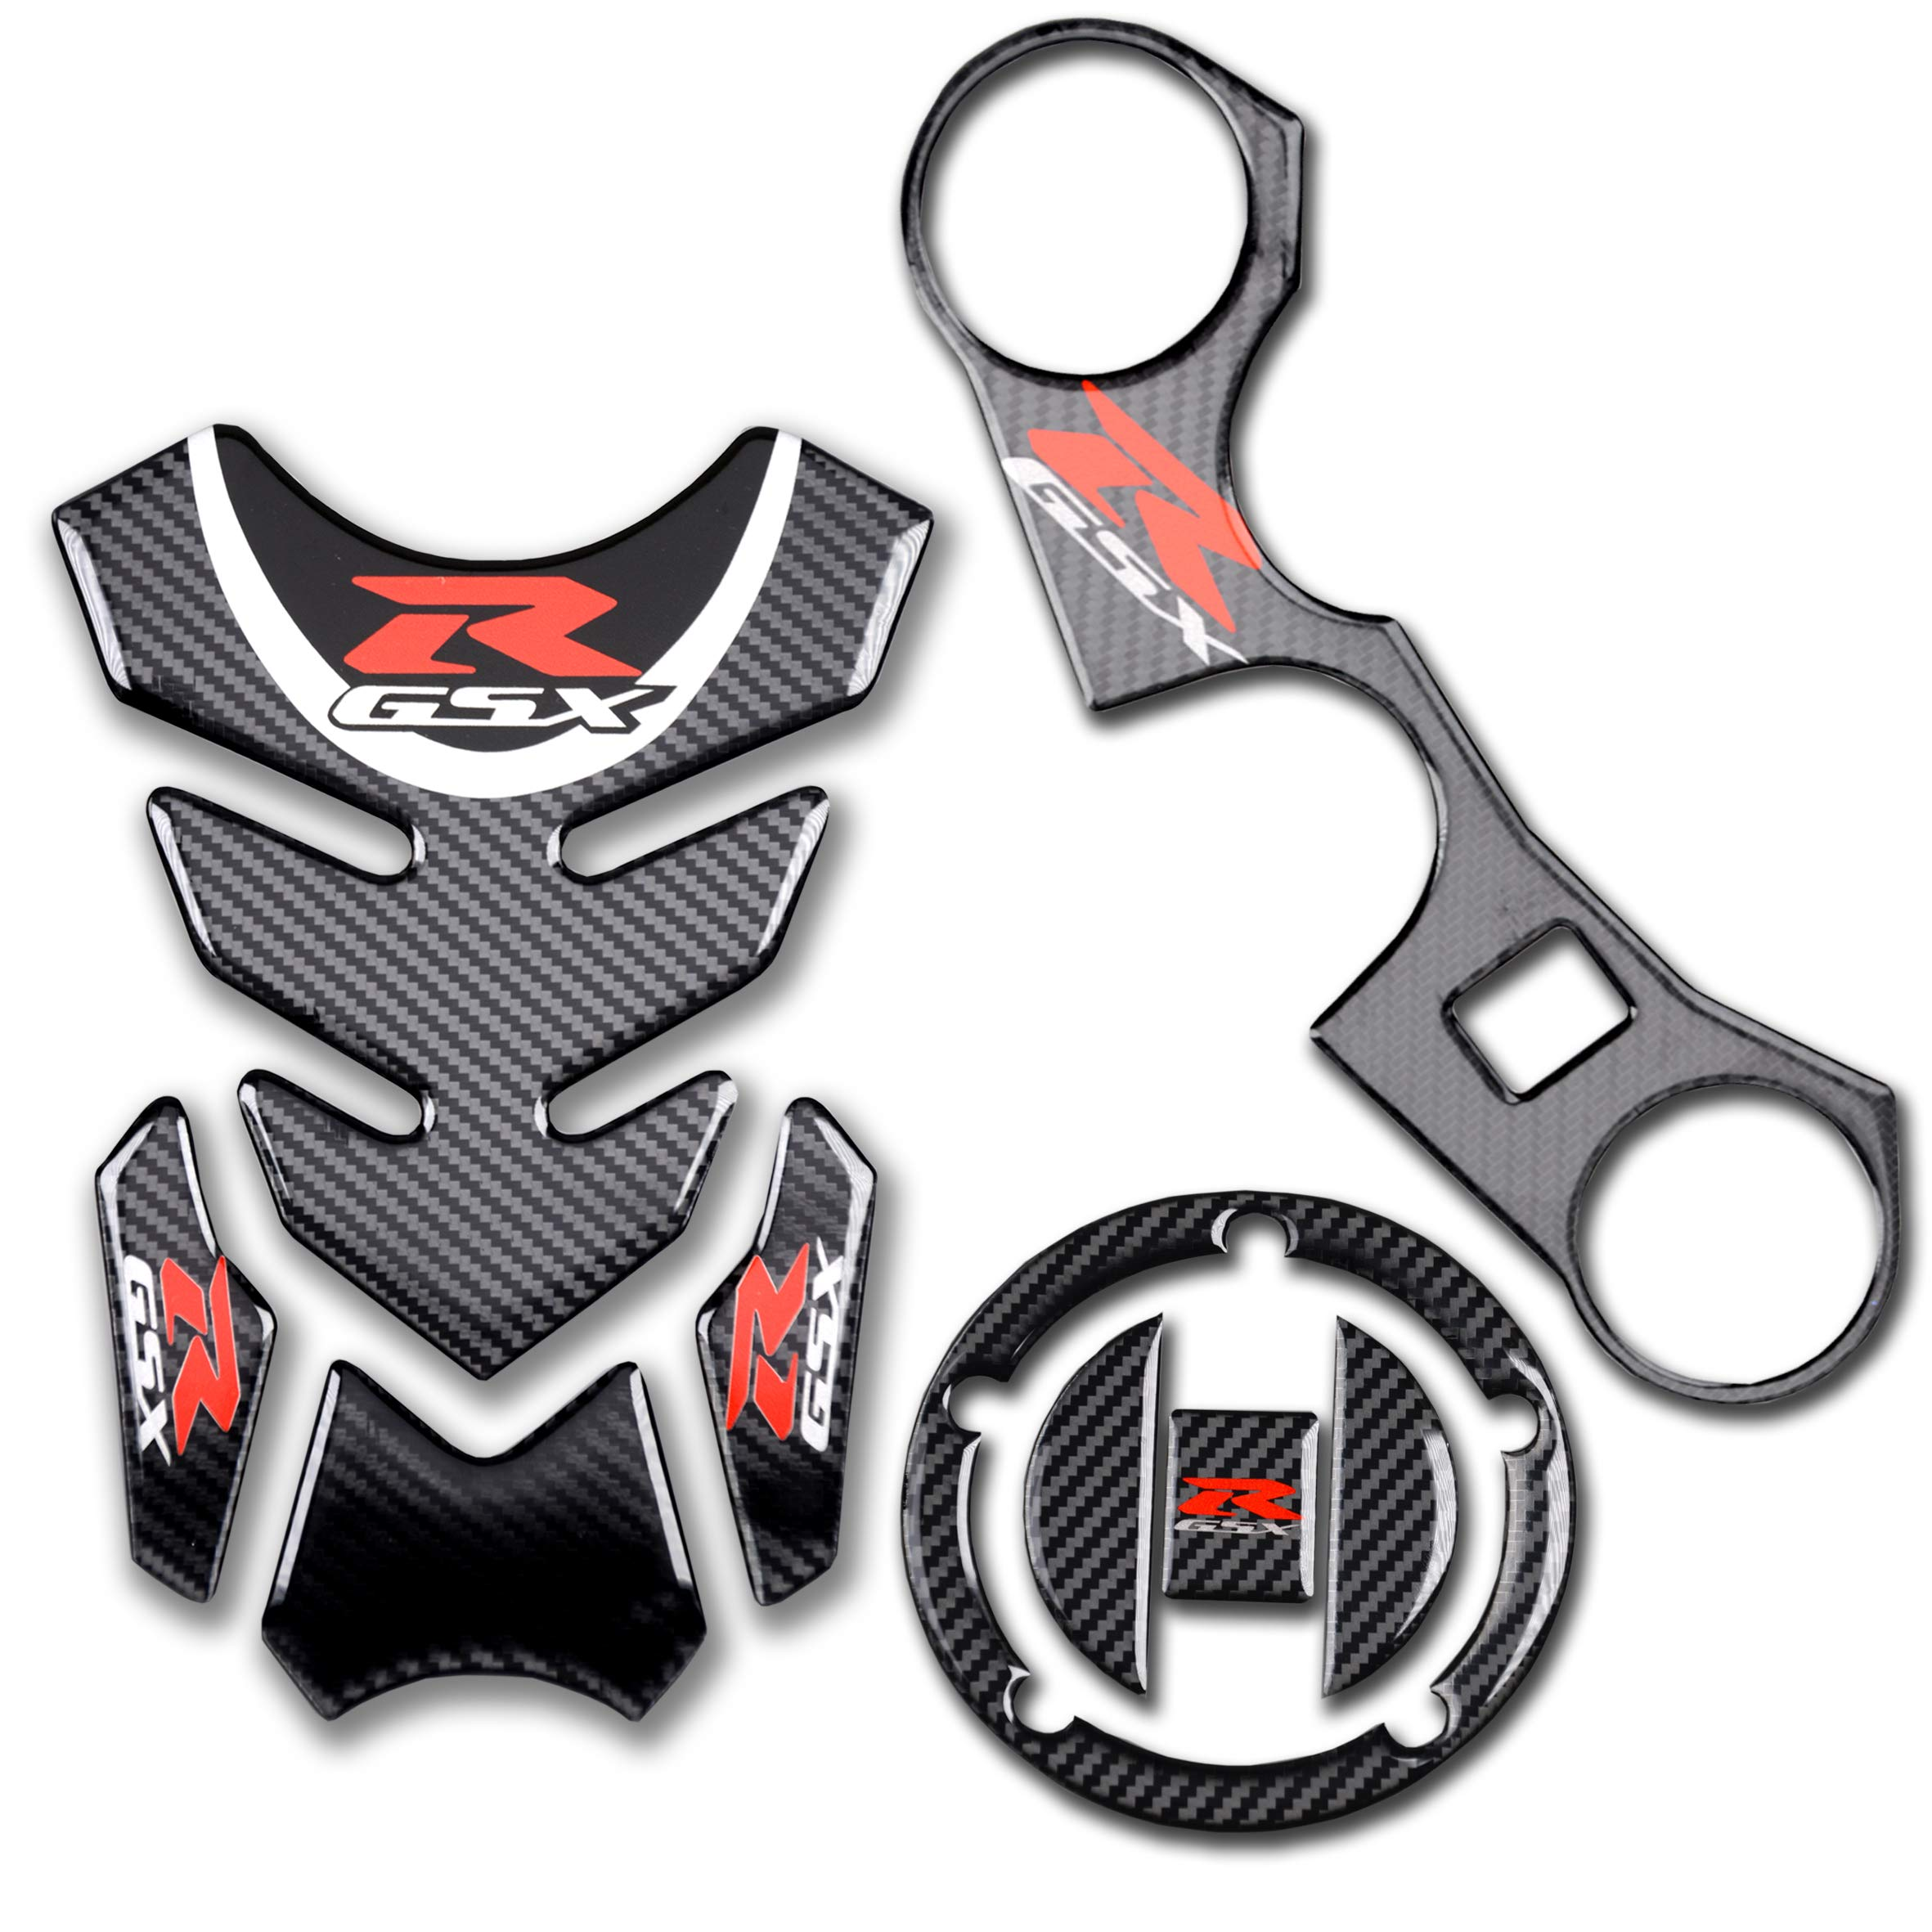 REVSOSTAR Real Carbon Fibre Gas Cap, Tank Pad,Triple Tree Front End Upper, Top Clamp Decal Stickers, Tank Pad, Tank Protector for GSXR 600 GSXR 750 GSXR 1000 K6 K7 K8 K9 L1 2006-2017,3 Pcs Per Set by REVSOSTAR